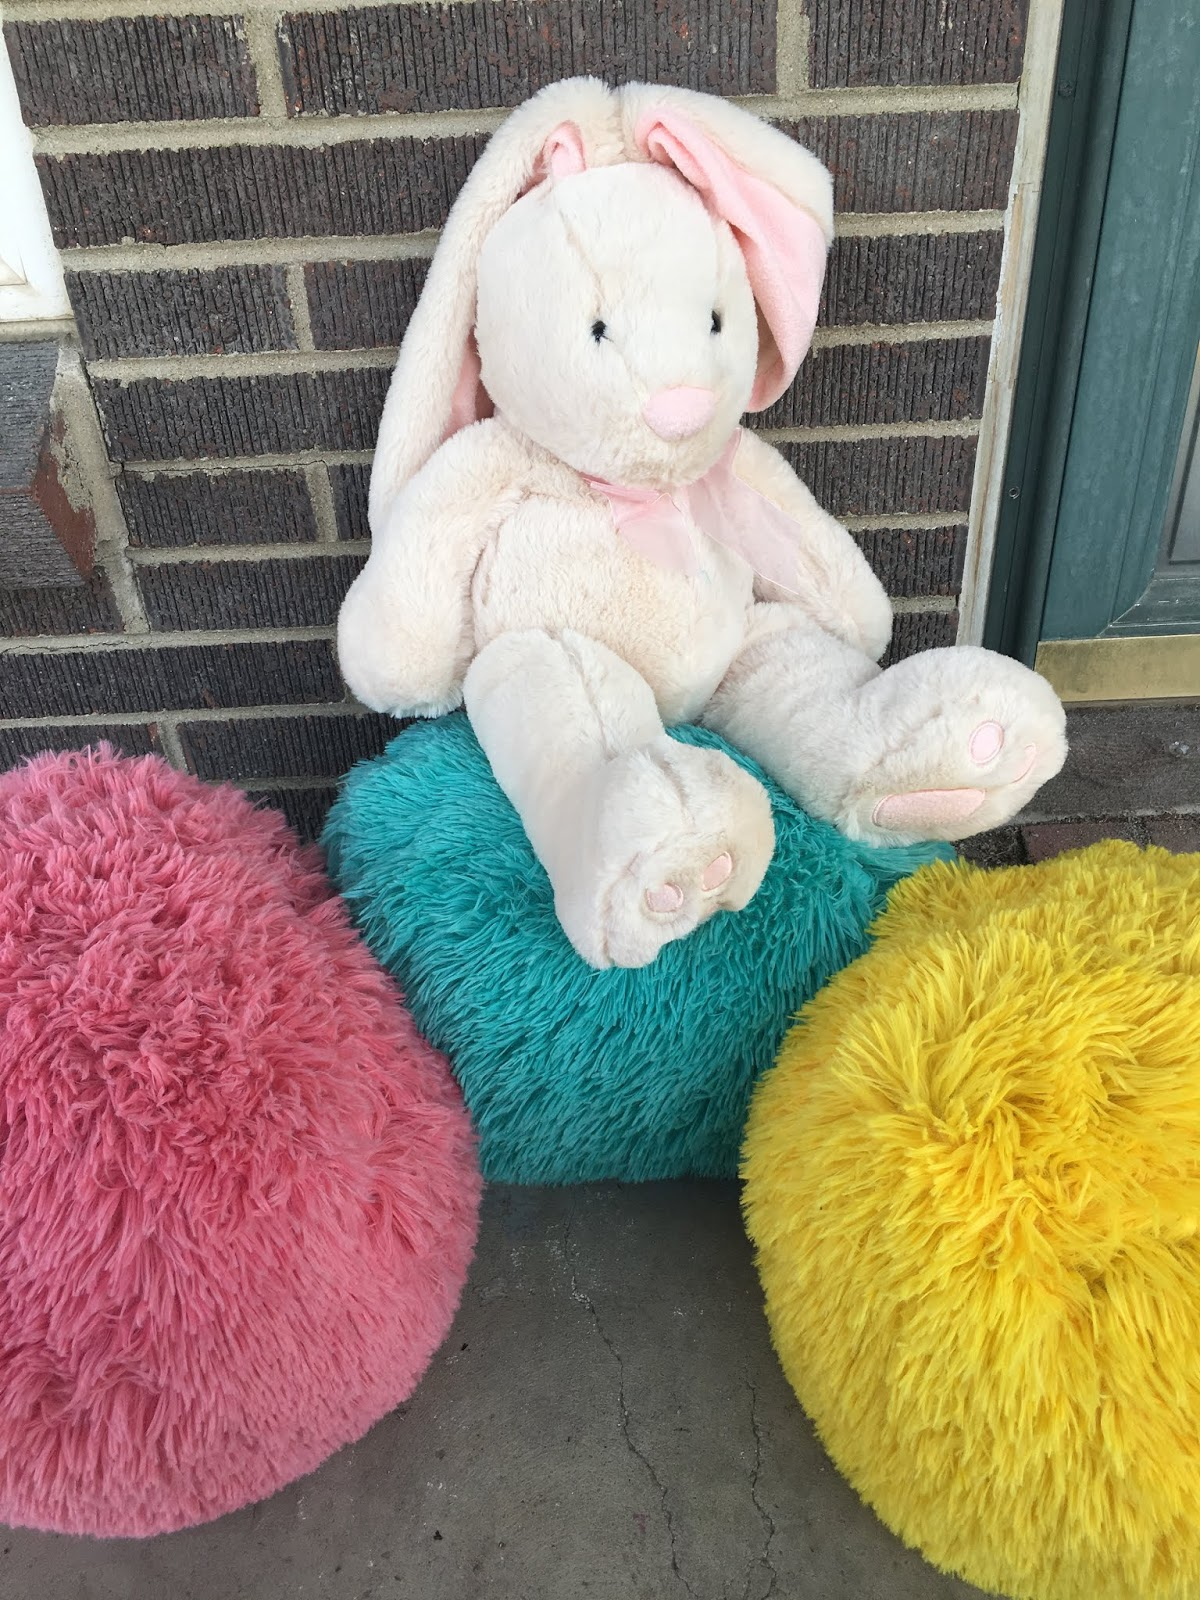 a bunny stuffed animal sits on top of bright color pillows